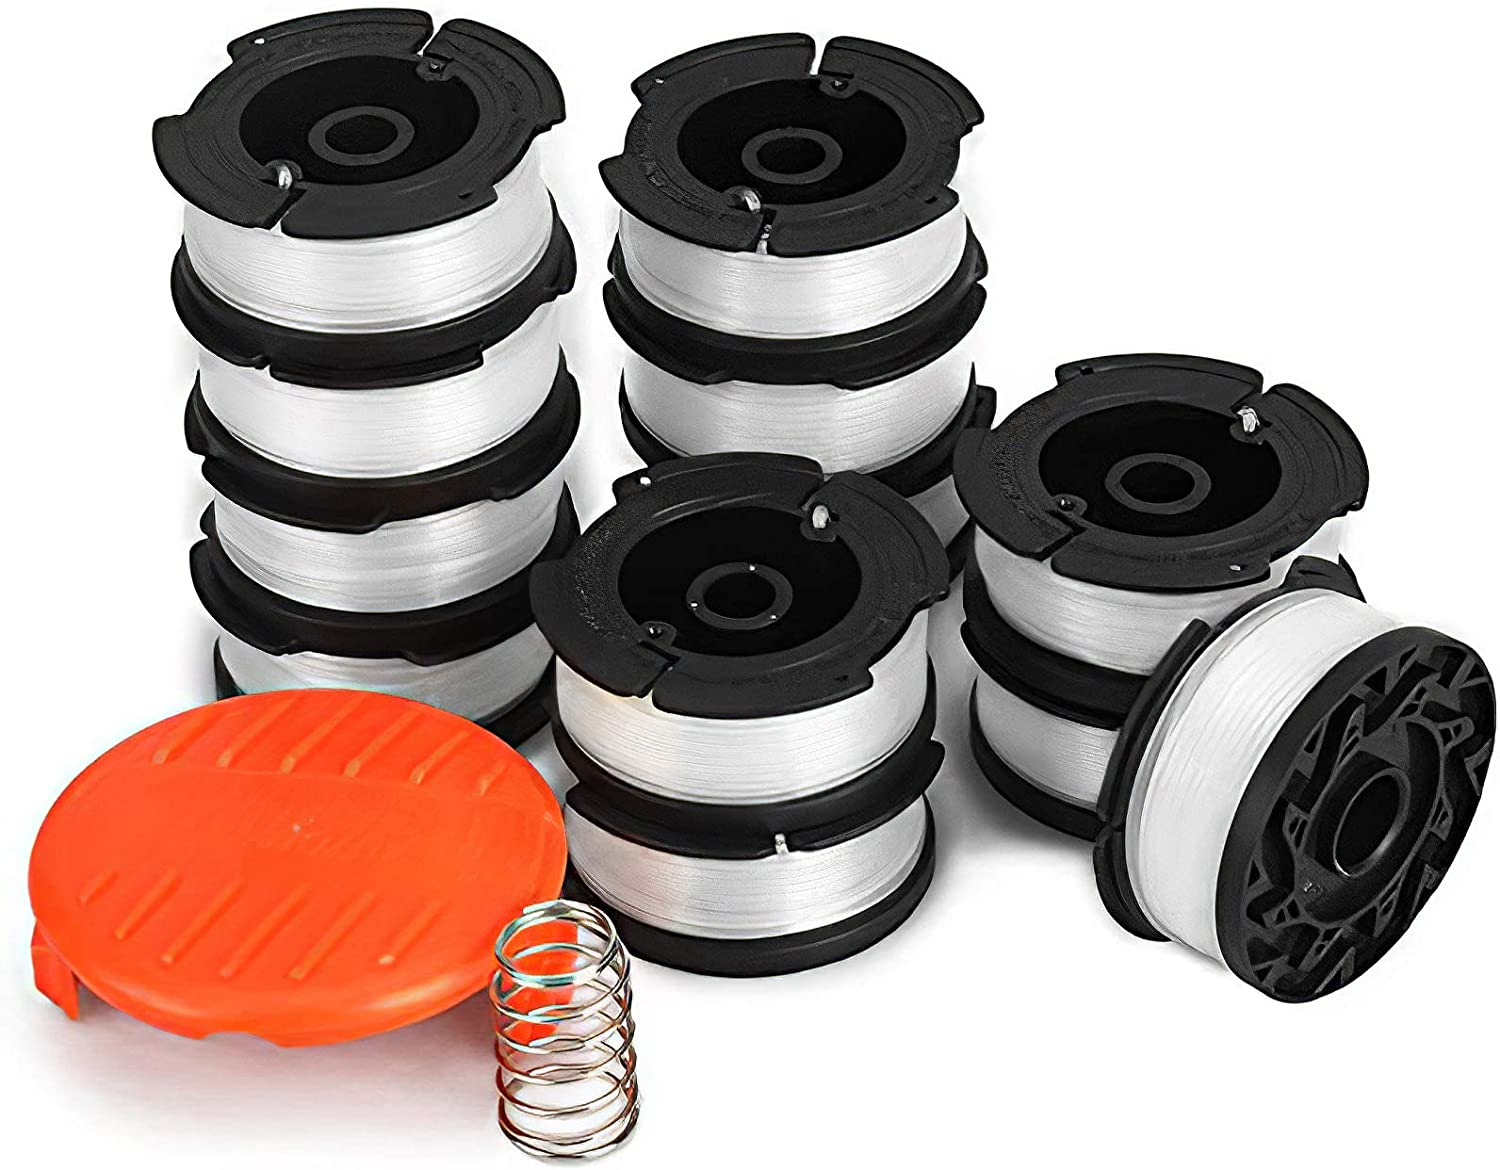 Trimmer Spool 4 Pack /& Cap /& Spring Replacement For Black /& Decker GH500 ST7000